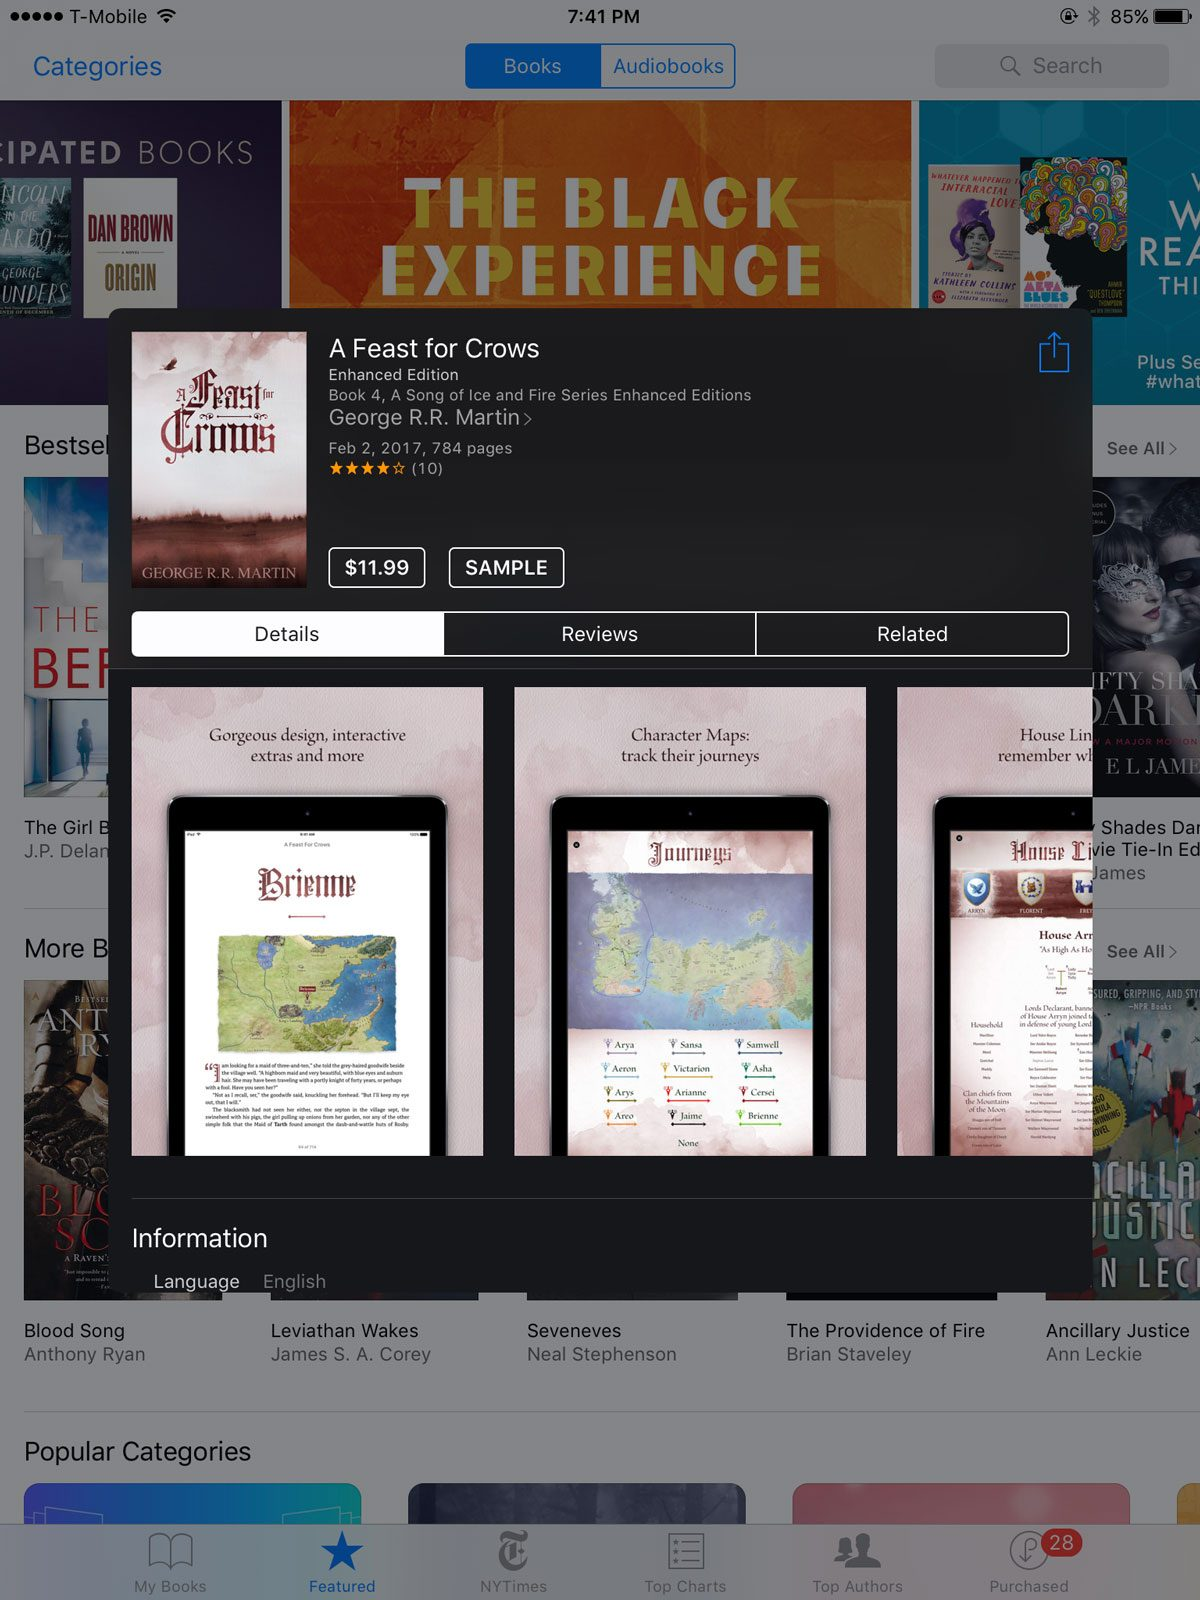 A Feast for Crows Enhanced Edition on iBooks